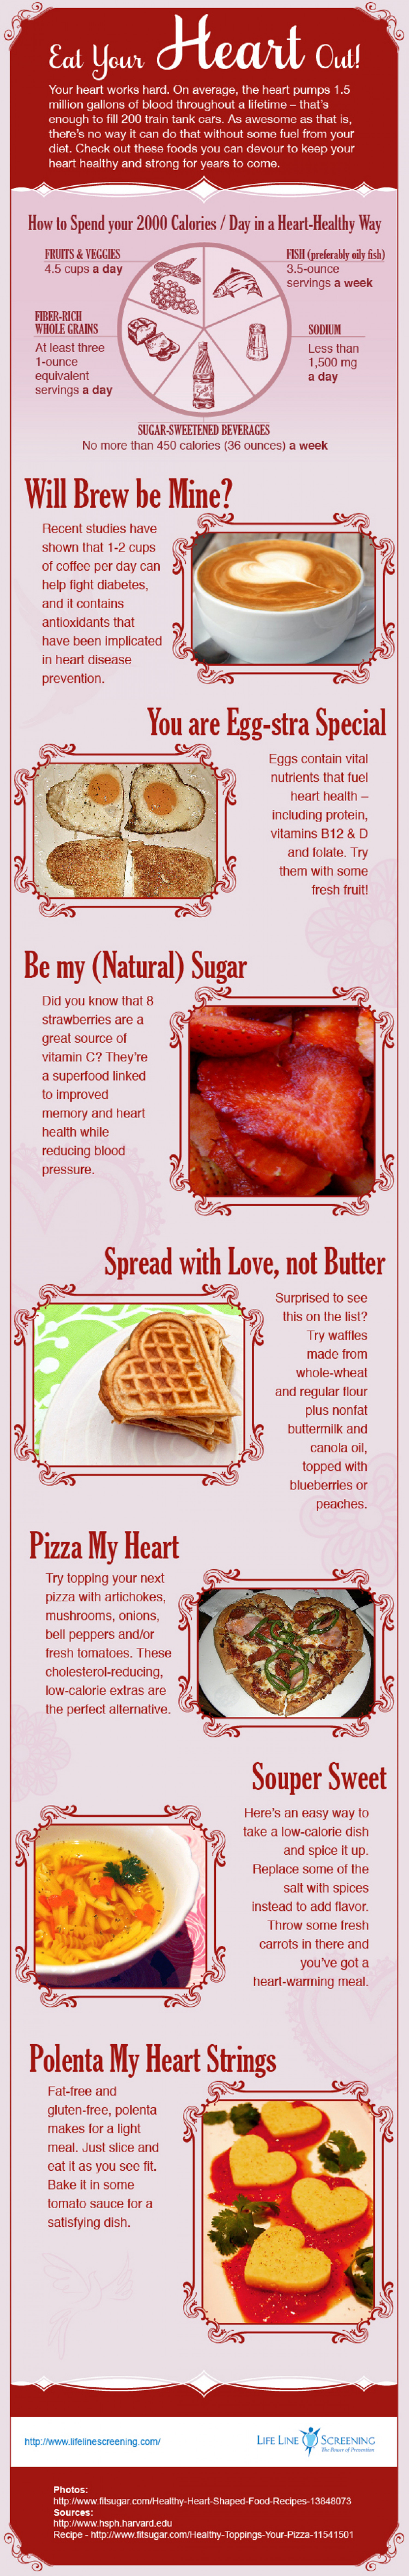 Eat Your Heart Out! Heart-Healthy Eating Tips to Help Lower Your Risk for Heart Disease Infographic